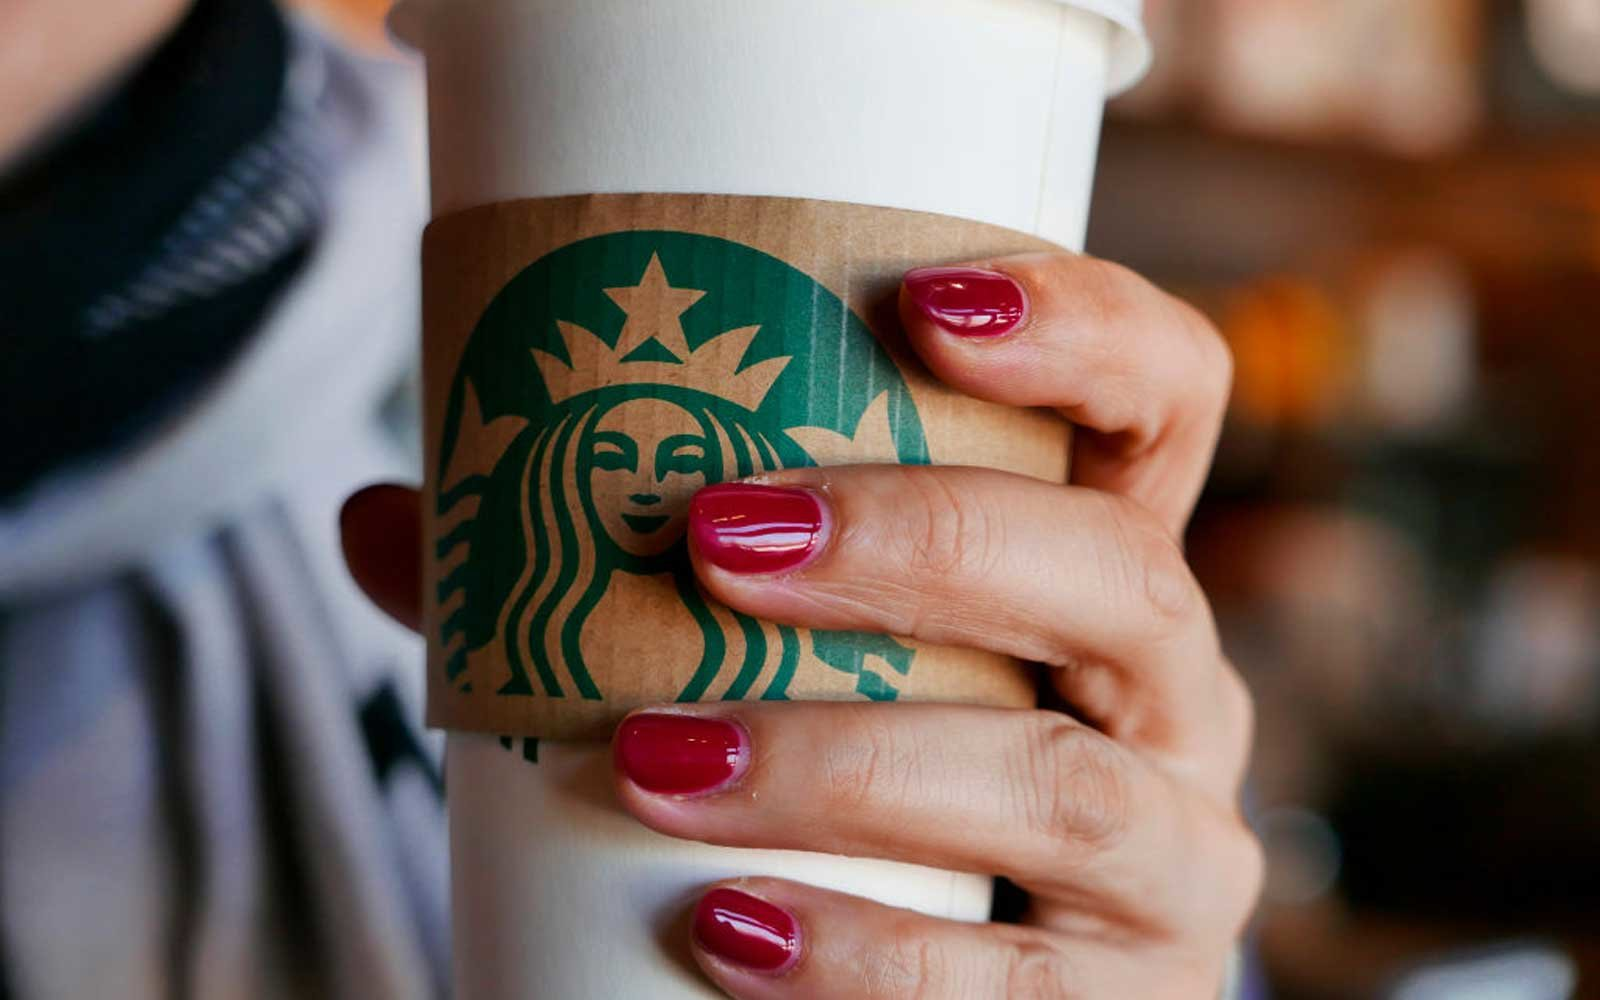 Hand holding a coffee cup in a Starbucks coffee shop.